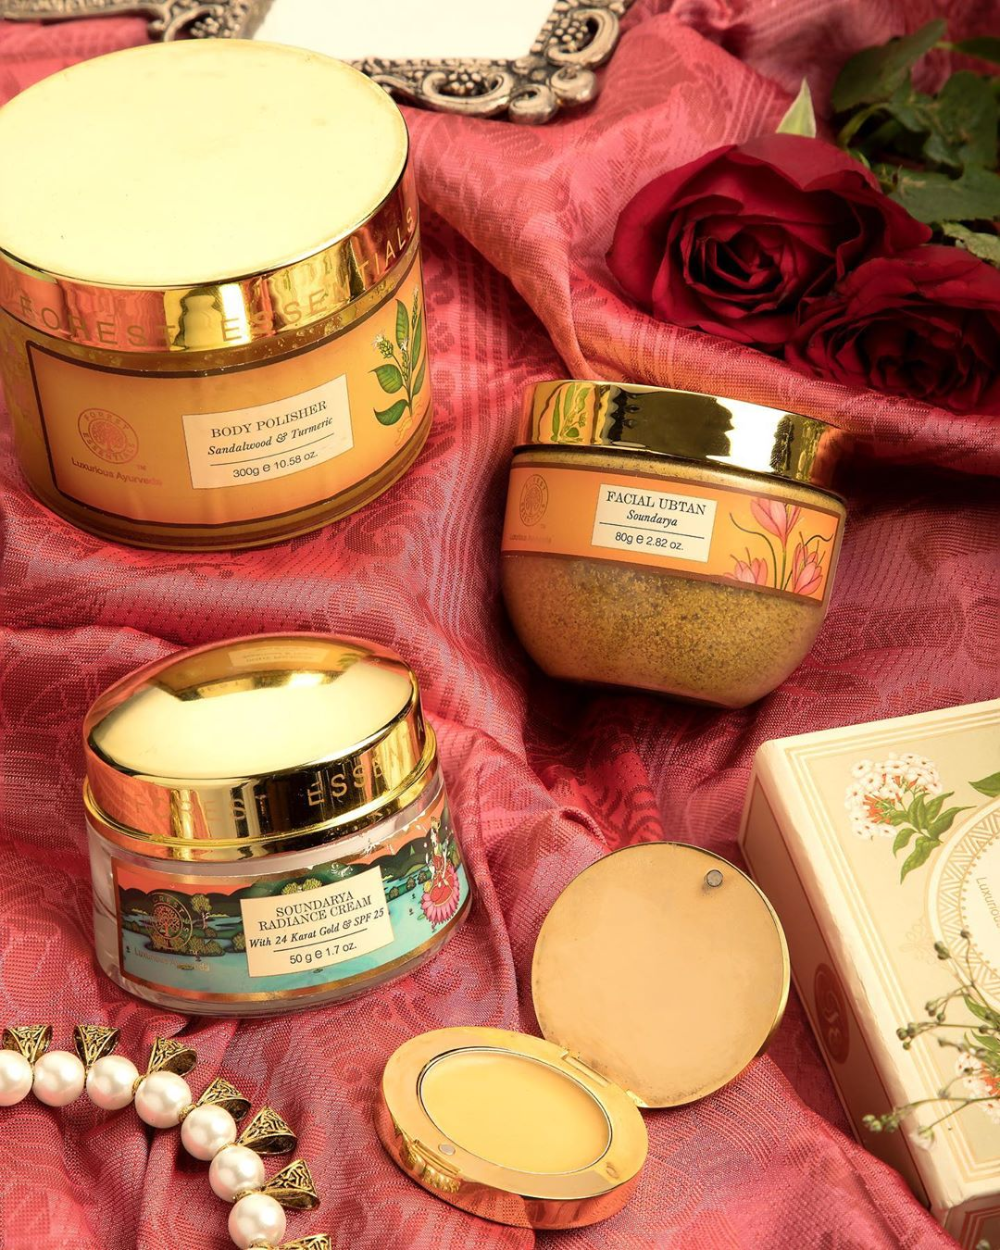 Why we love Forest Essentials Soundarya Radiance Cream